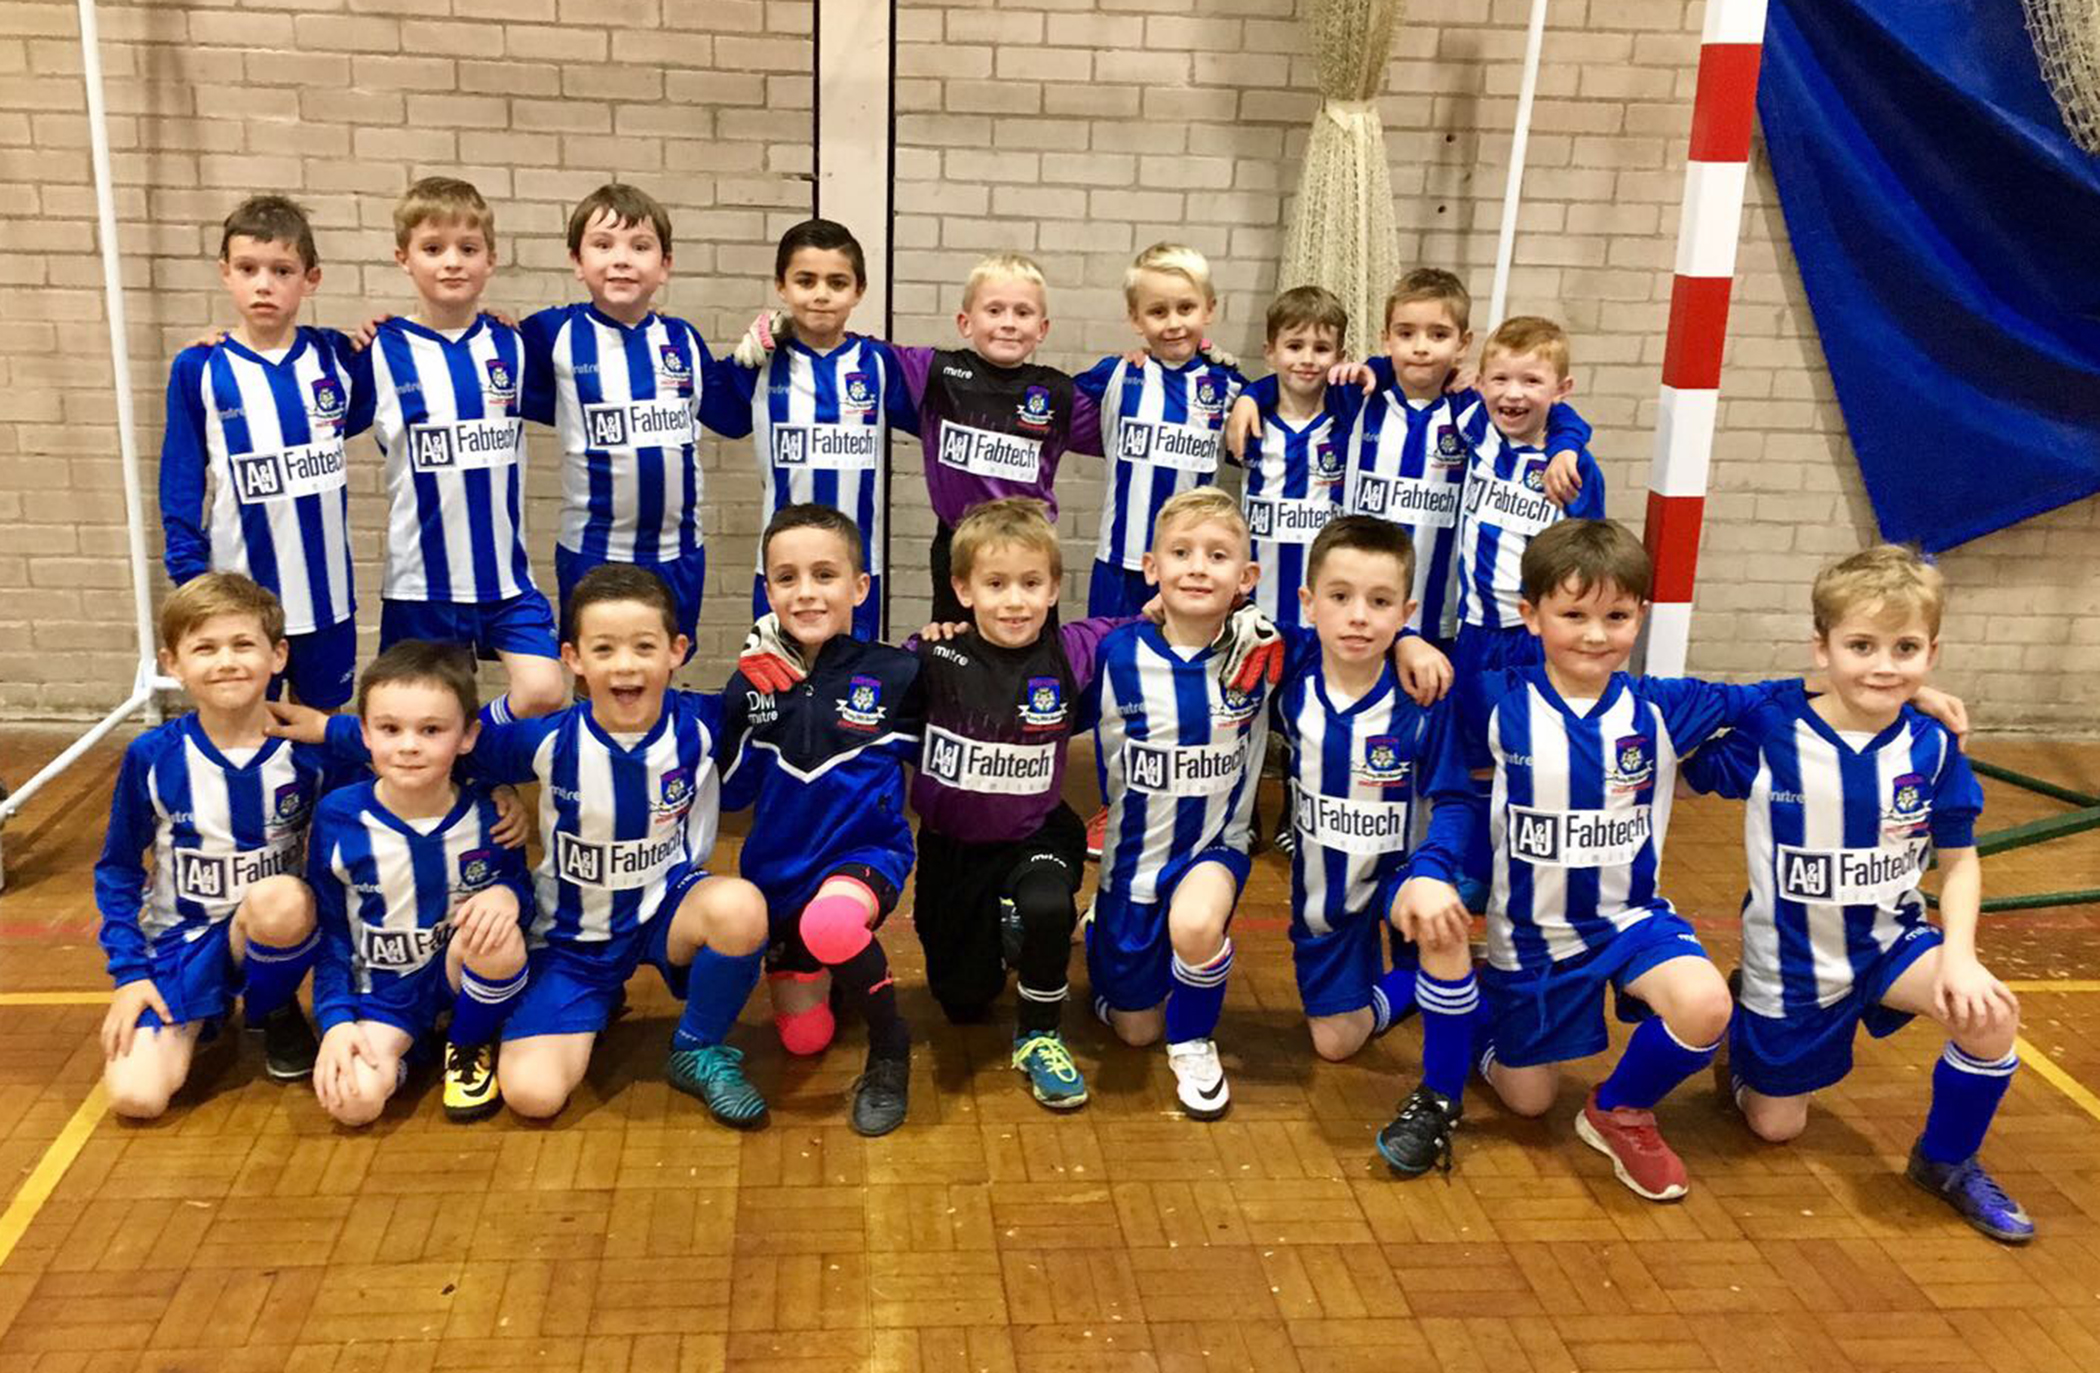 A&J Fabtech nets with Lepton Highlanders under 7 football sponsorship